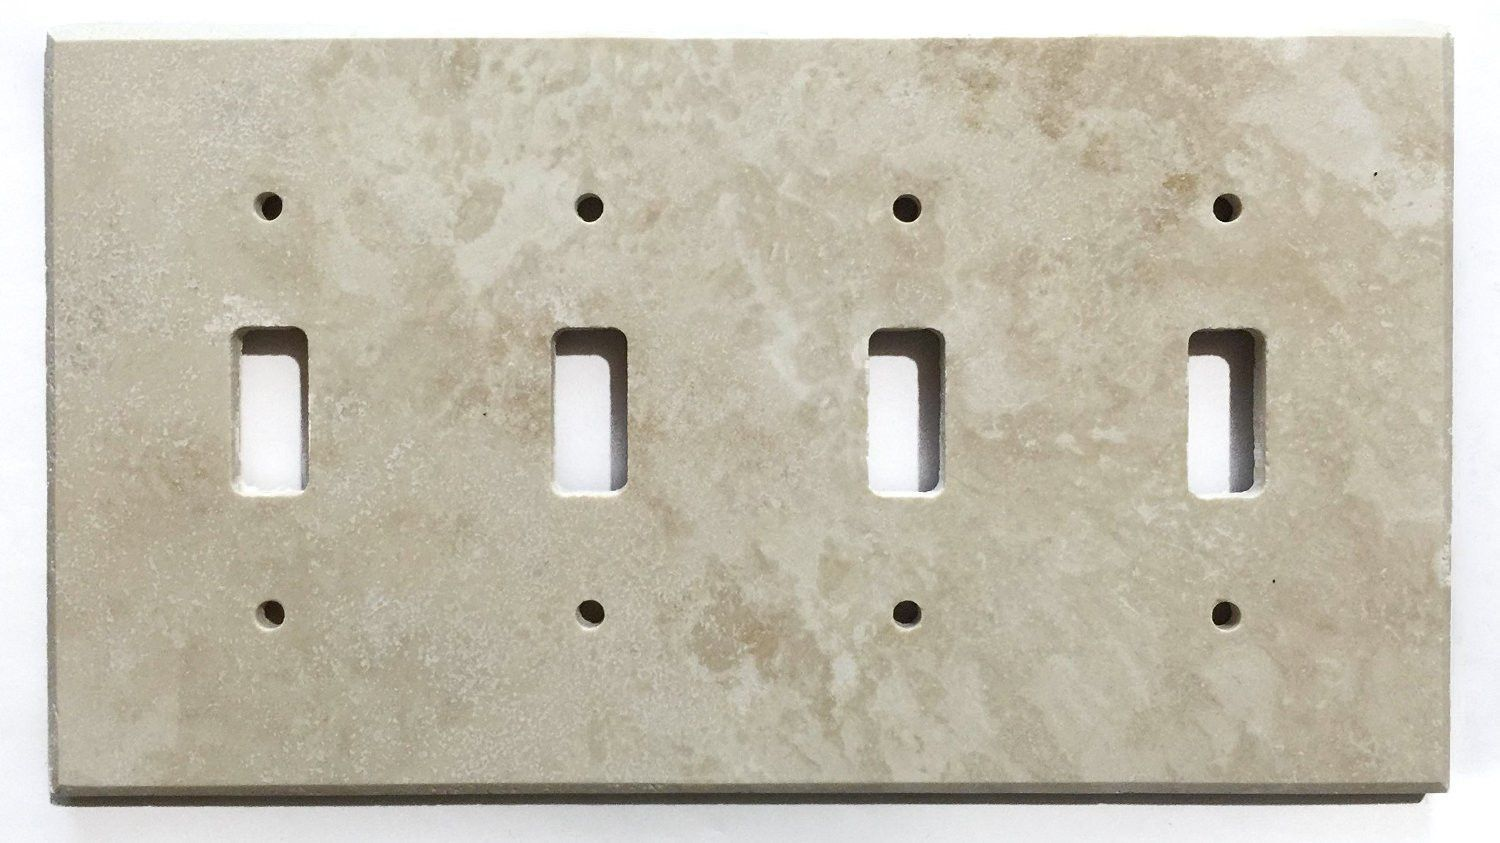 Ivory Travertine Quadruple Toggle Switch Wall Plate Light Switchplates Outlet Covers Plates Wallplates Cover Honed